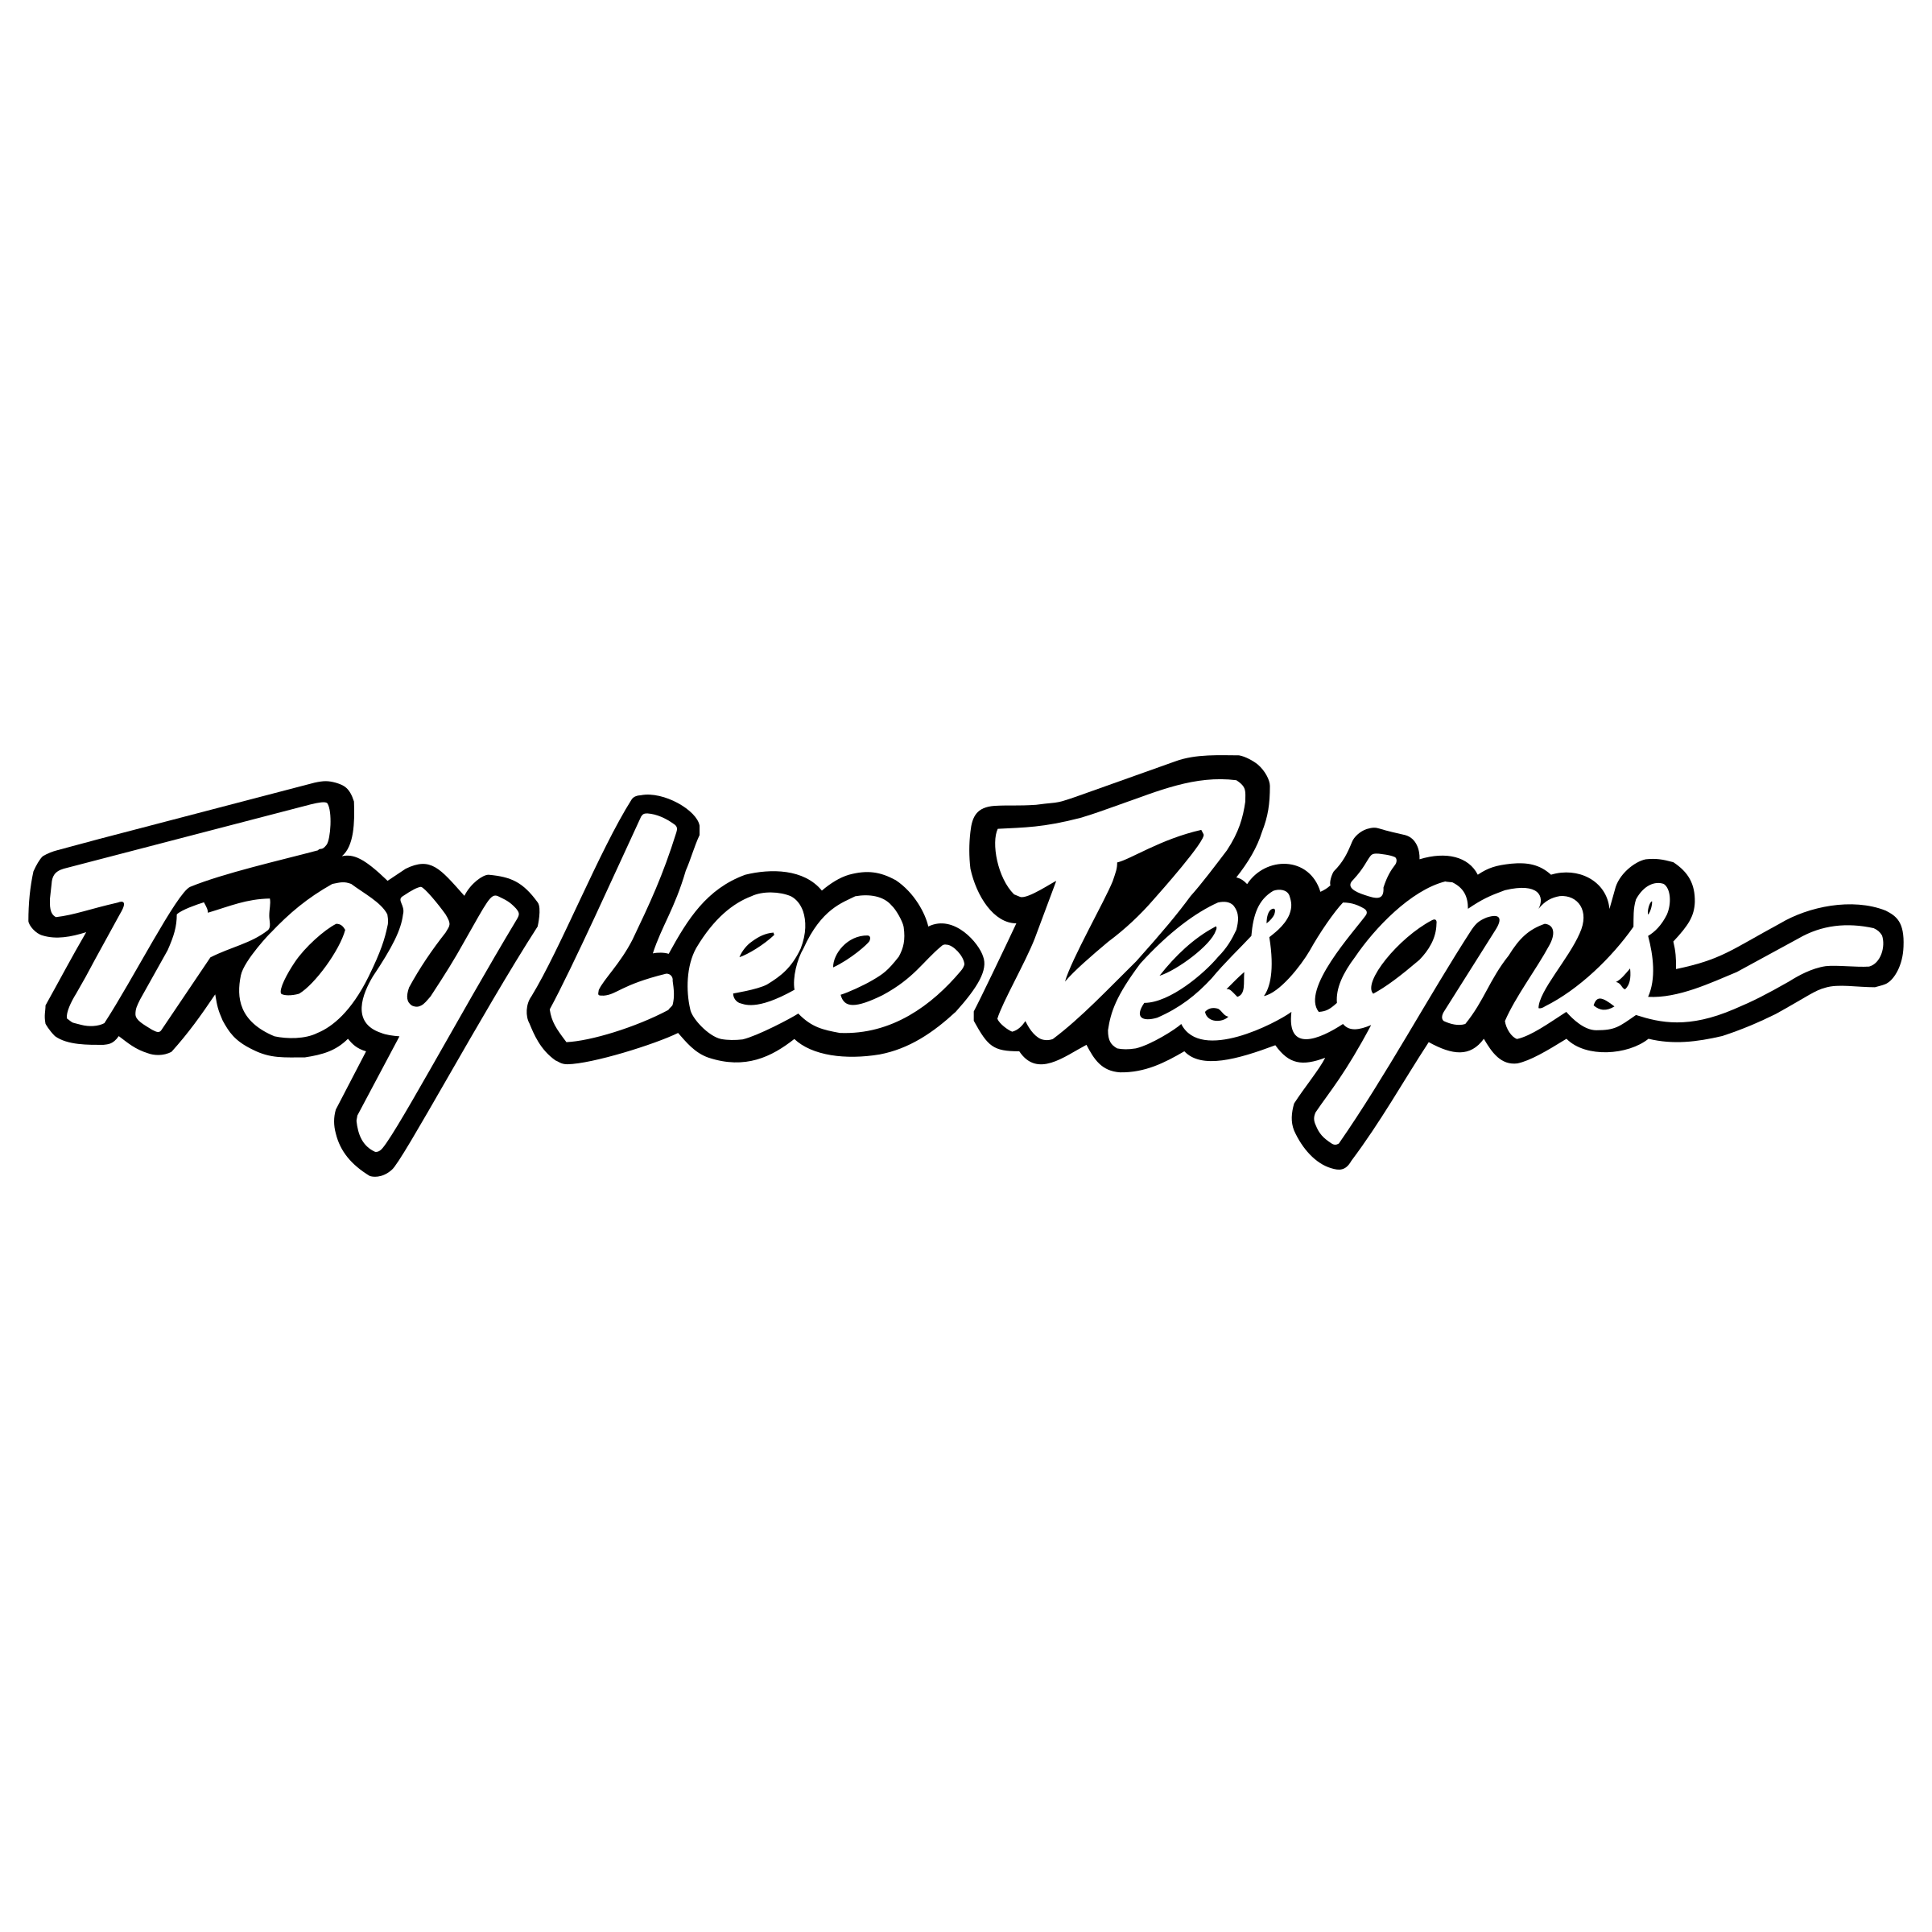 troy-lee-designs-logo-png-transparent.png